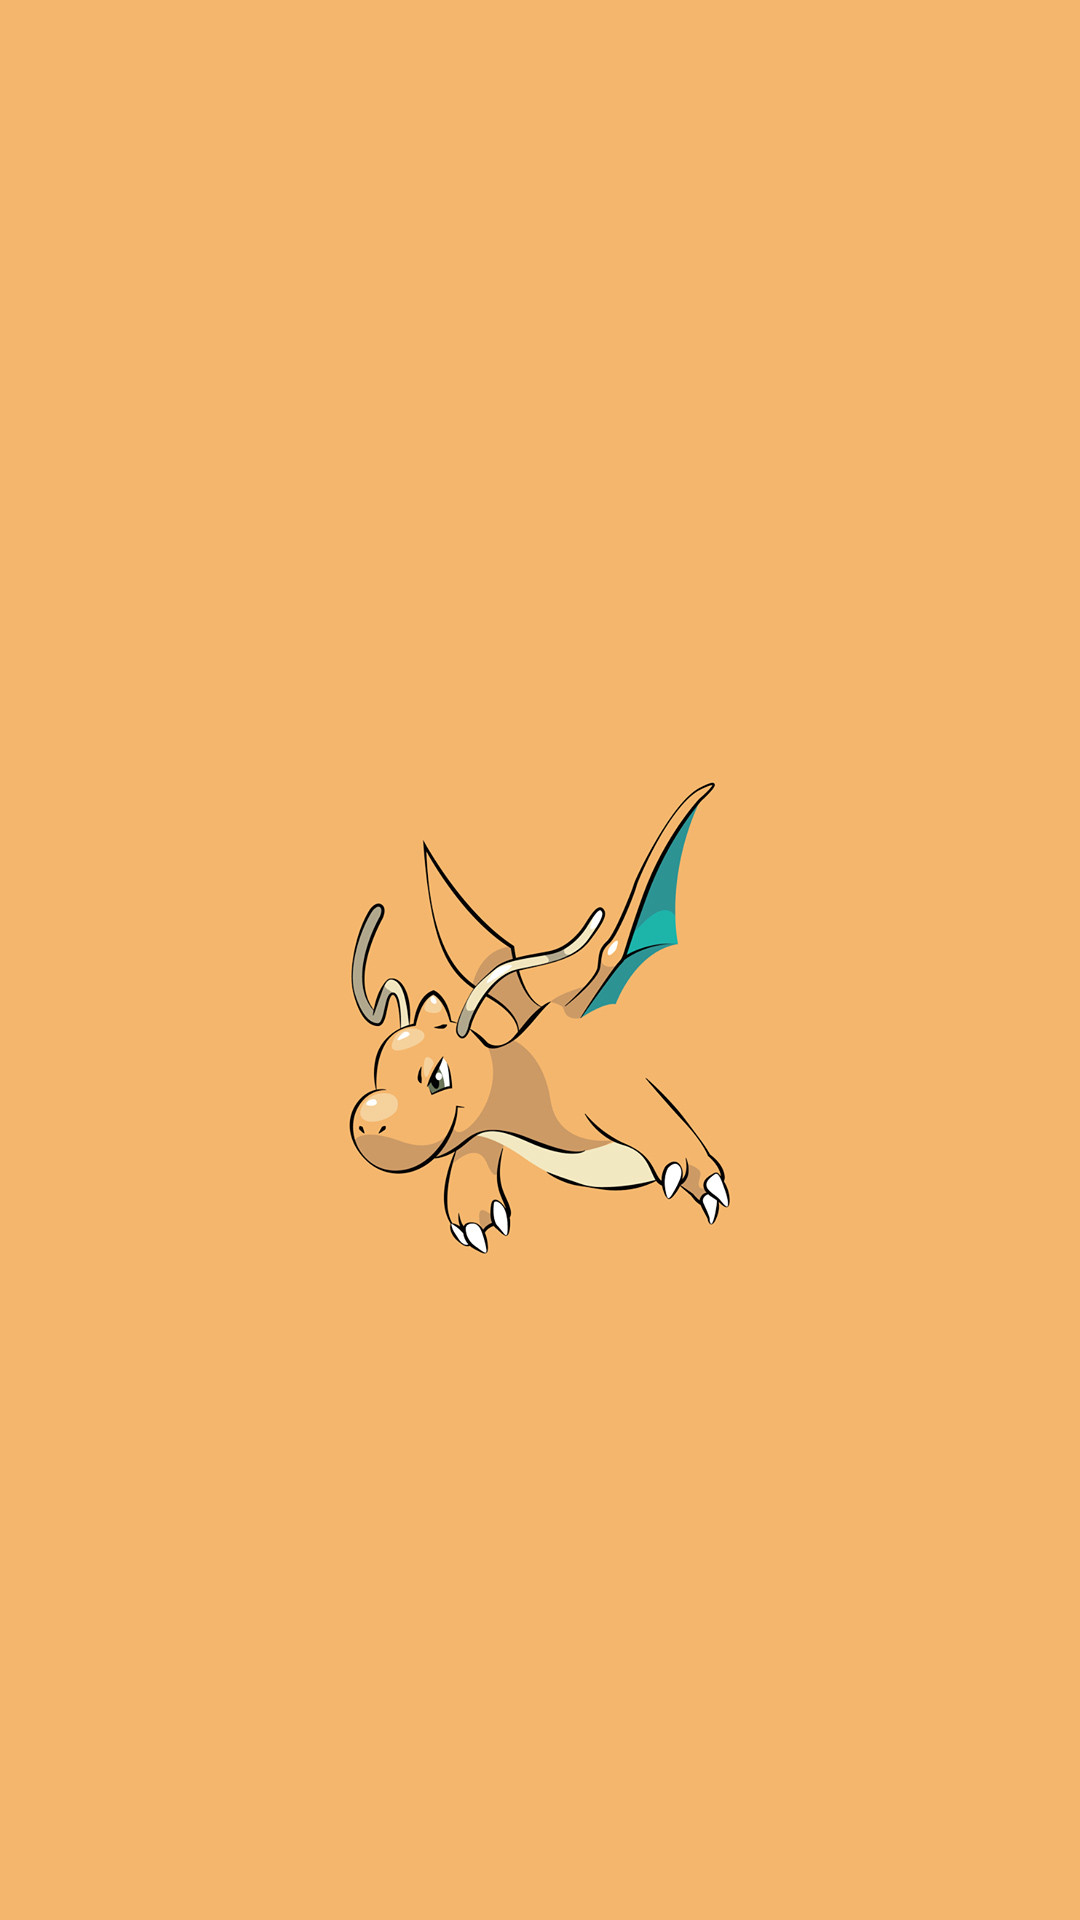 1080x1920 Dragonite Pokemon Character iPhone 6+ HD Wallpaper -  http://freebestpicture.com